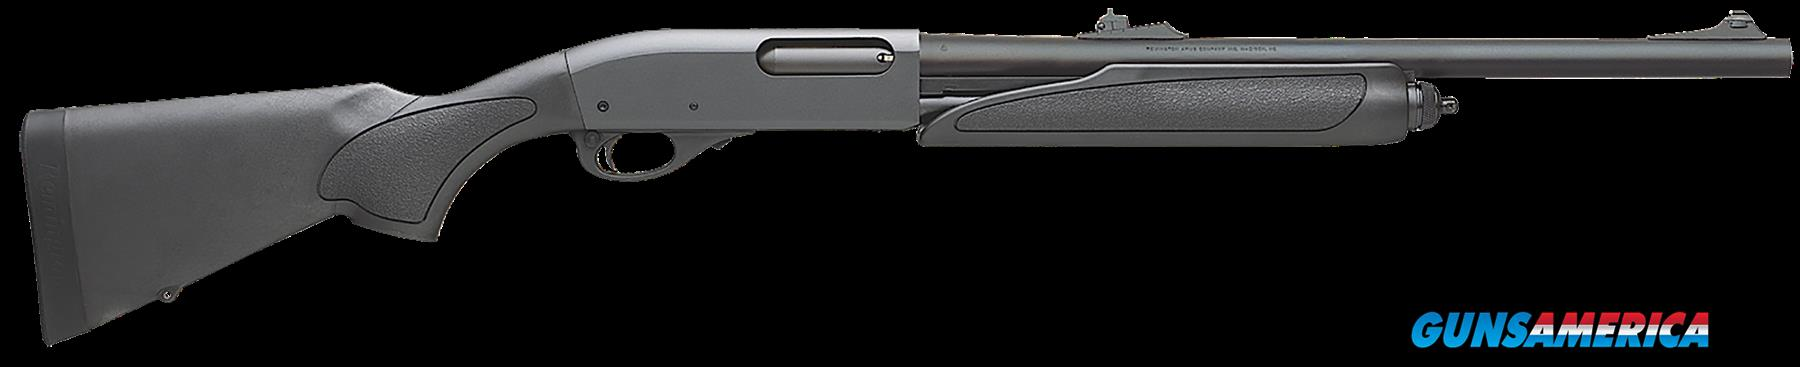 "Remington Firearms 25659 870 Express Youth Combo Pump 20 Gauge 20""/21"" 4+1 Black Synthetic Stock  Guns > Shotguns > Remington Shotguns  > Pump"